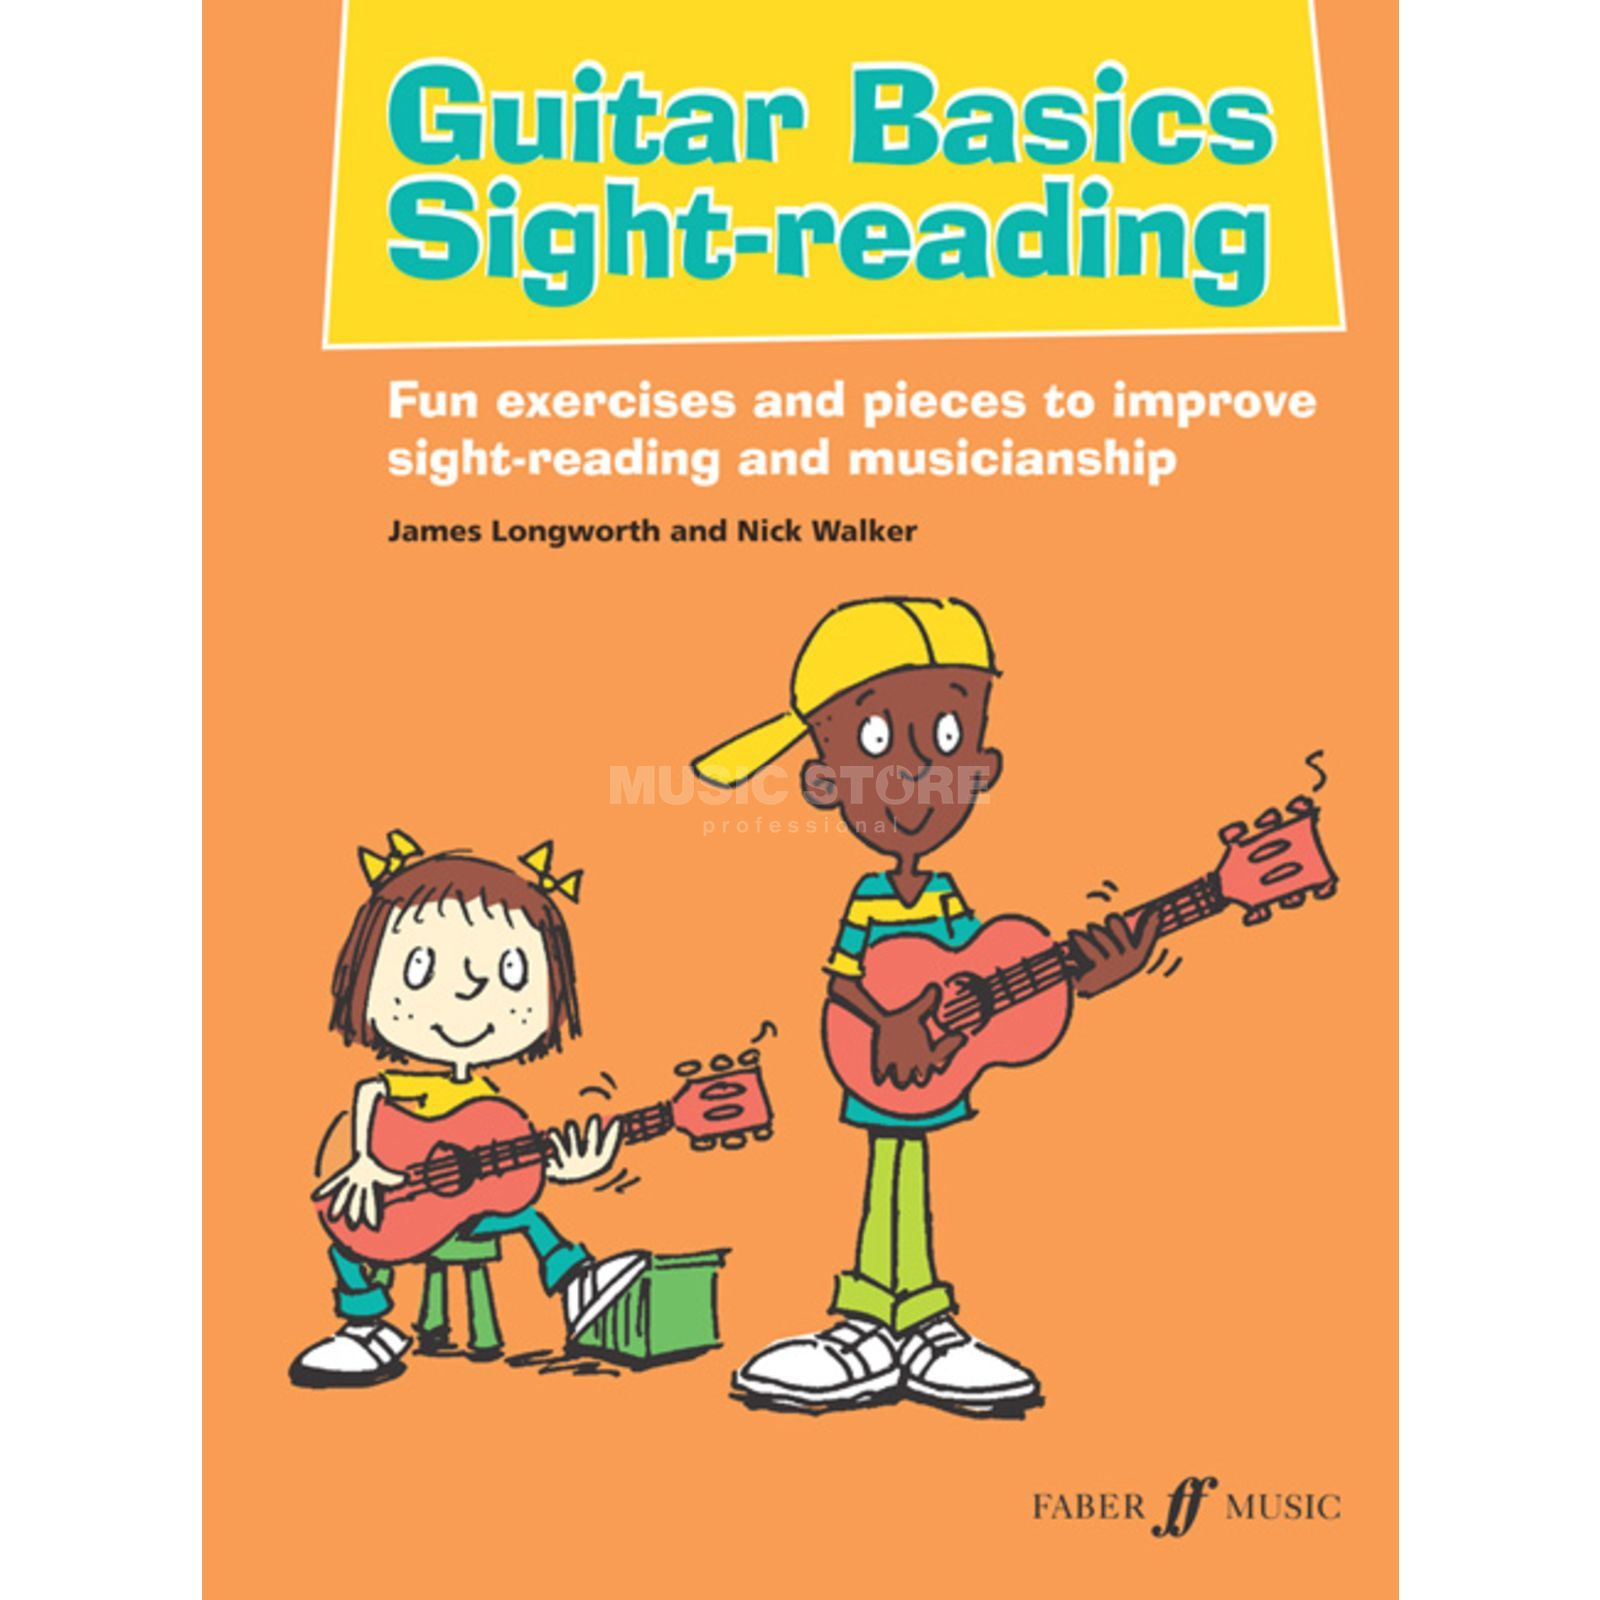 Faber Music Guitar Basics Sight-Reading Walker, Longworth Изображение товара